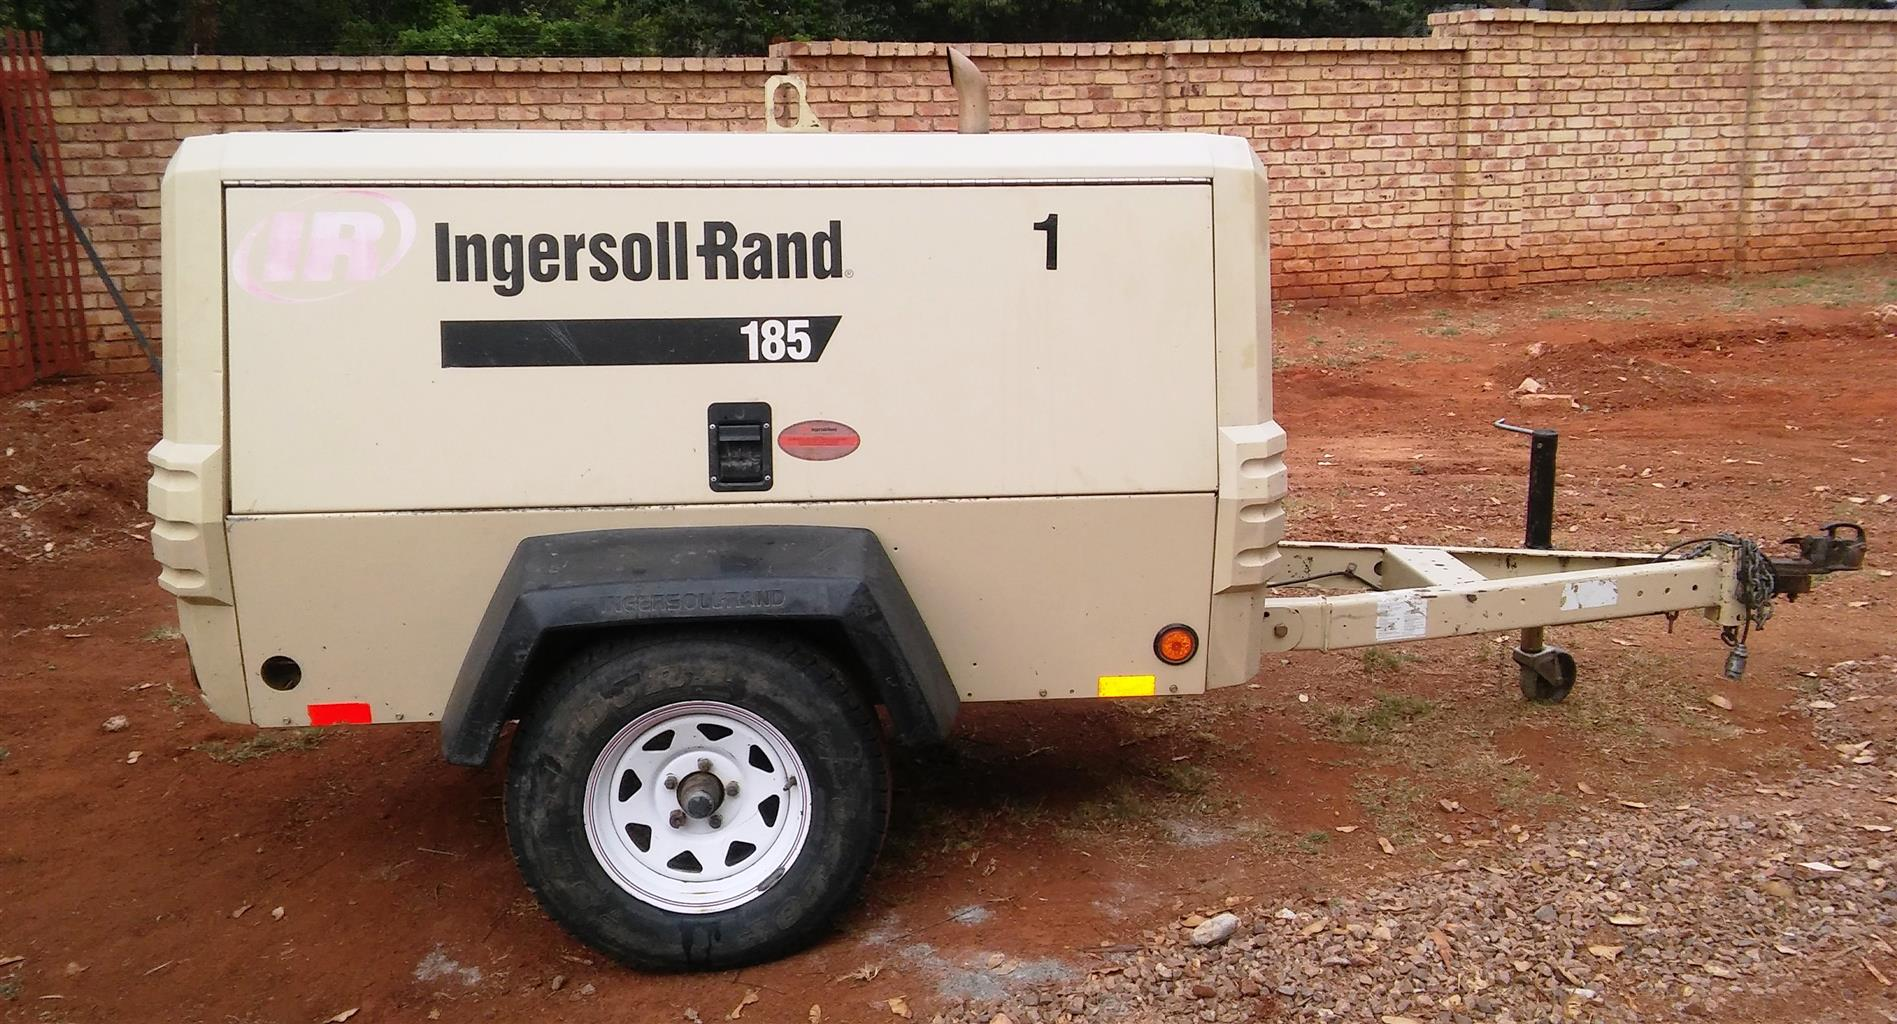 Ingersoll Rand 185CFM Mobile Air Compressor - 2800hrs